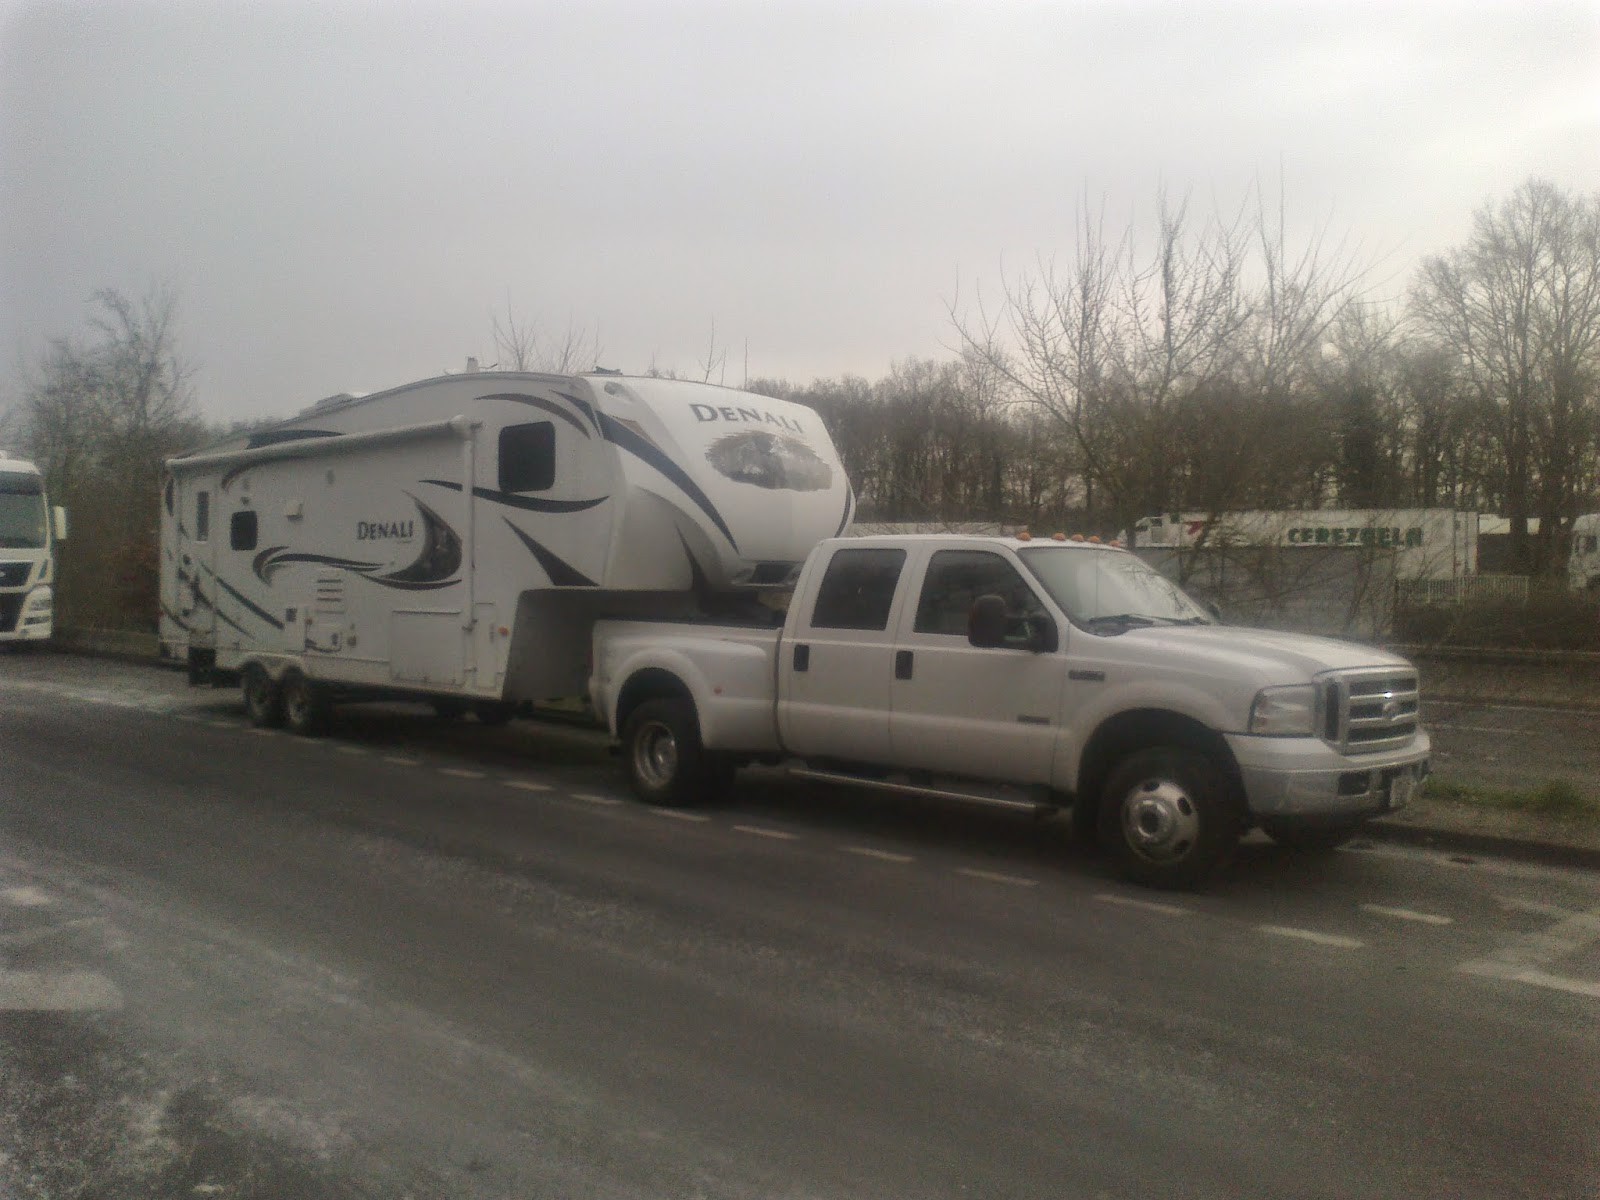 European 5th wheel and caravan delivery